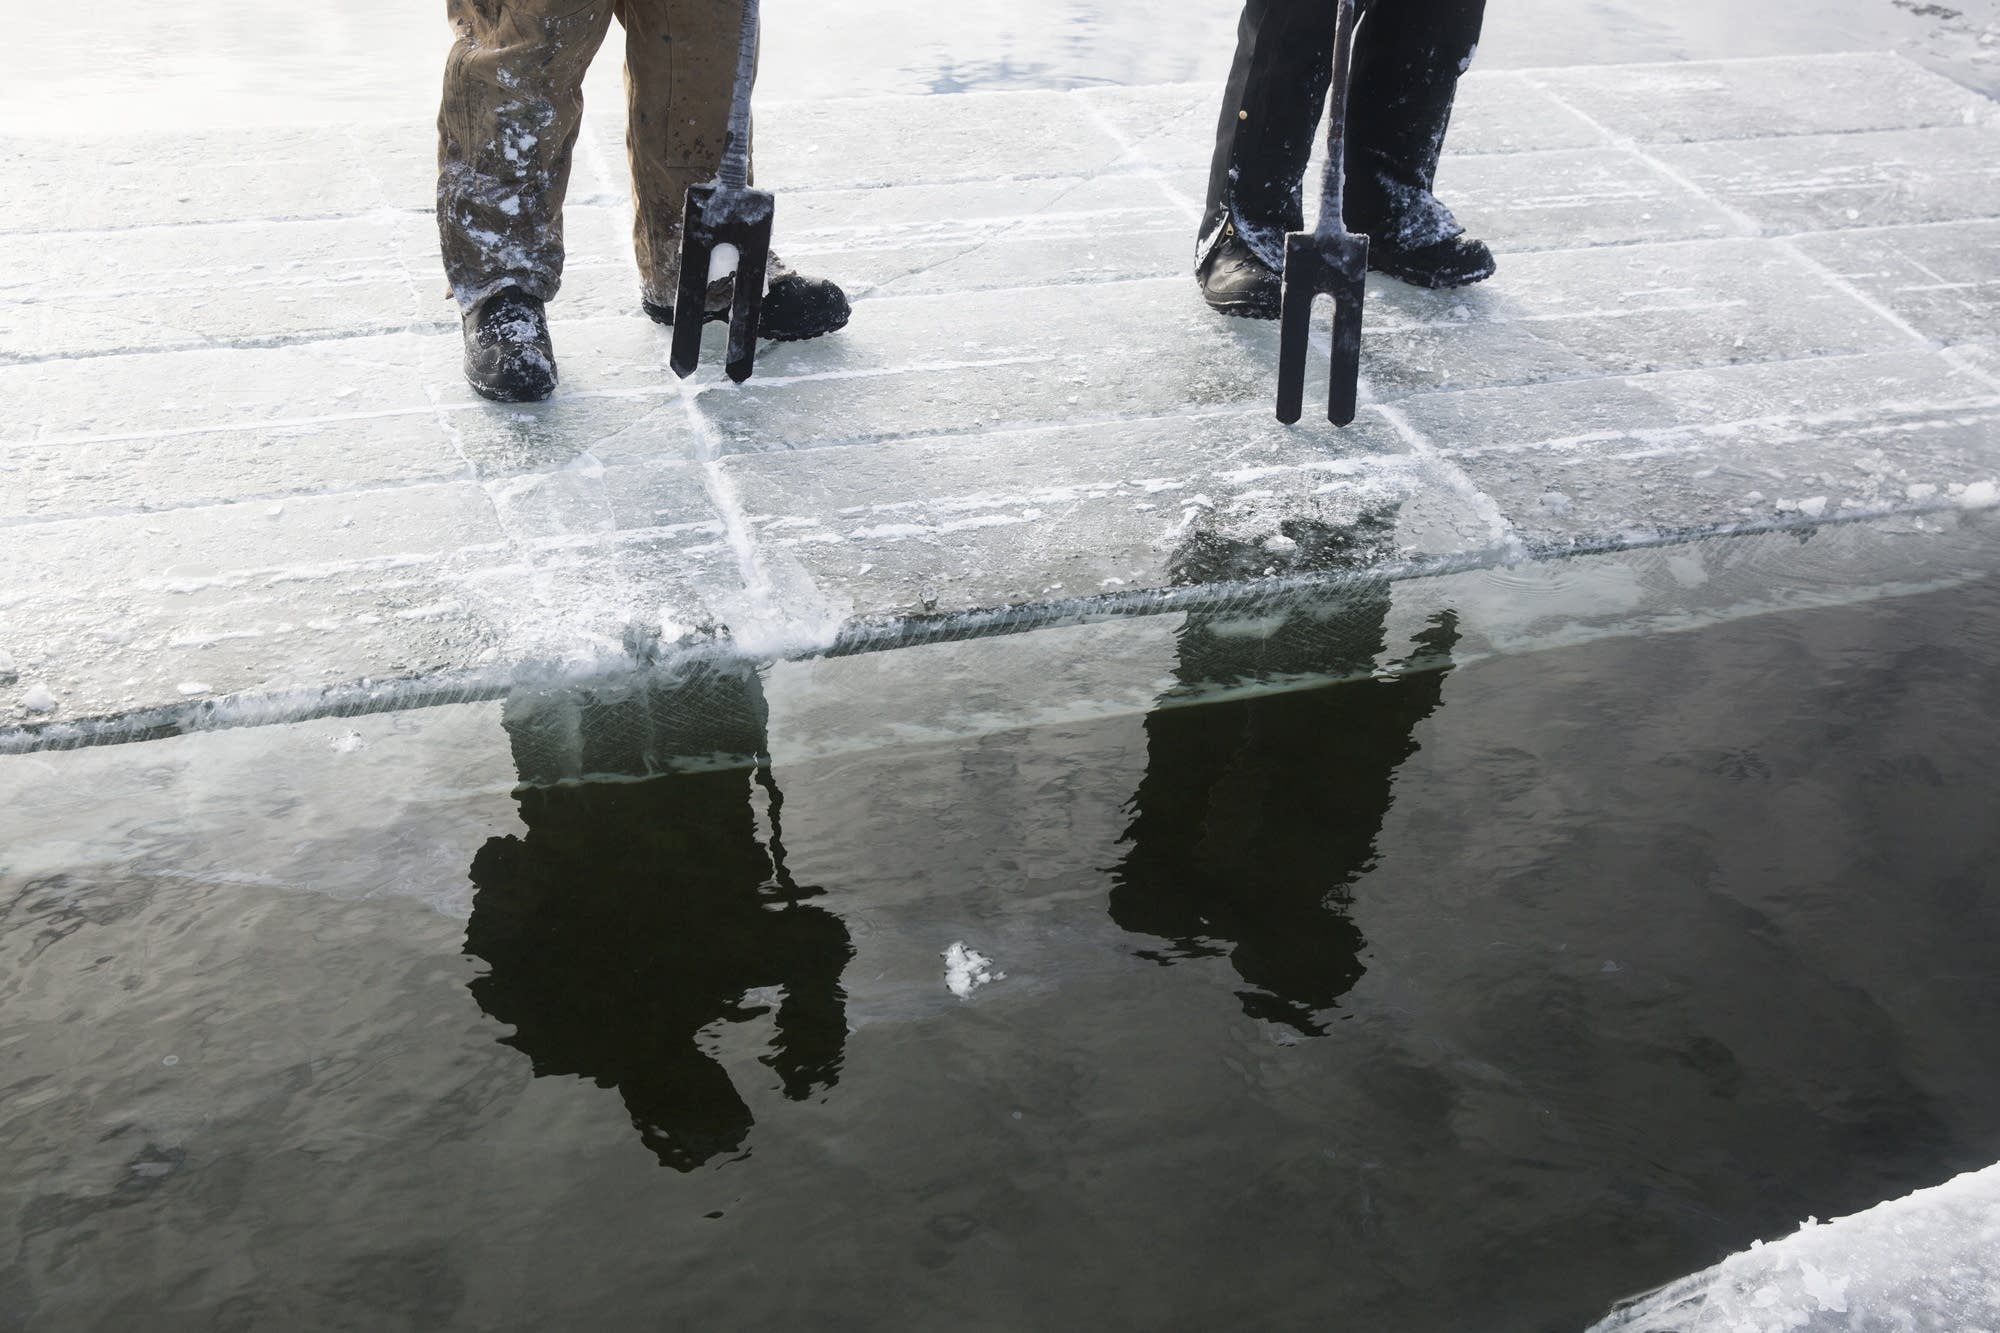 Two Wee Cut Ice workers and their chisel tools are reflected in the water.